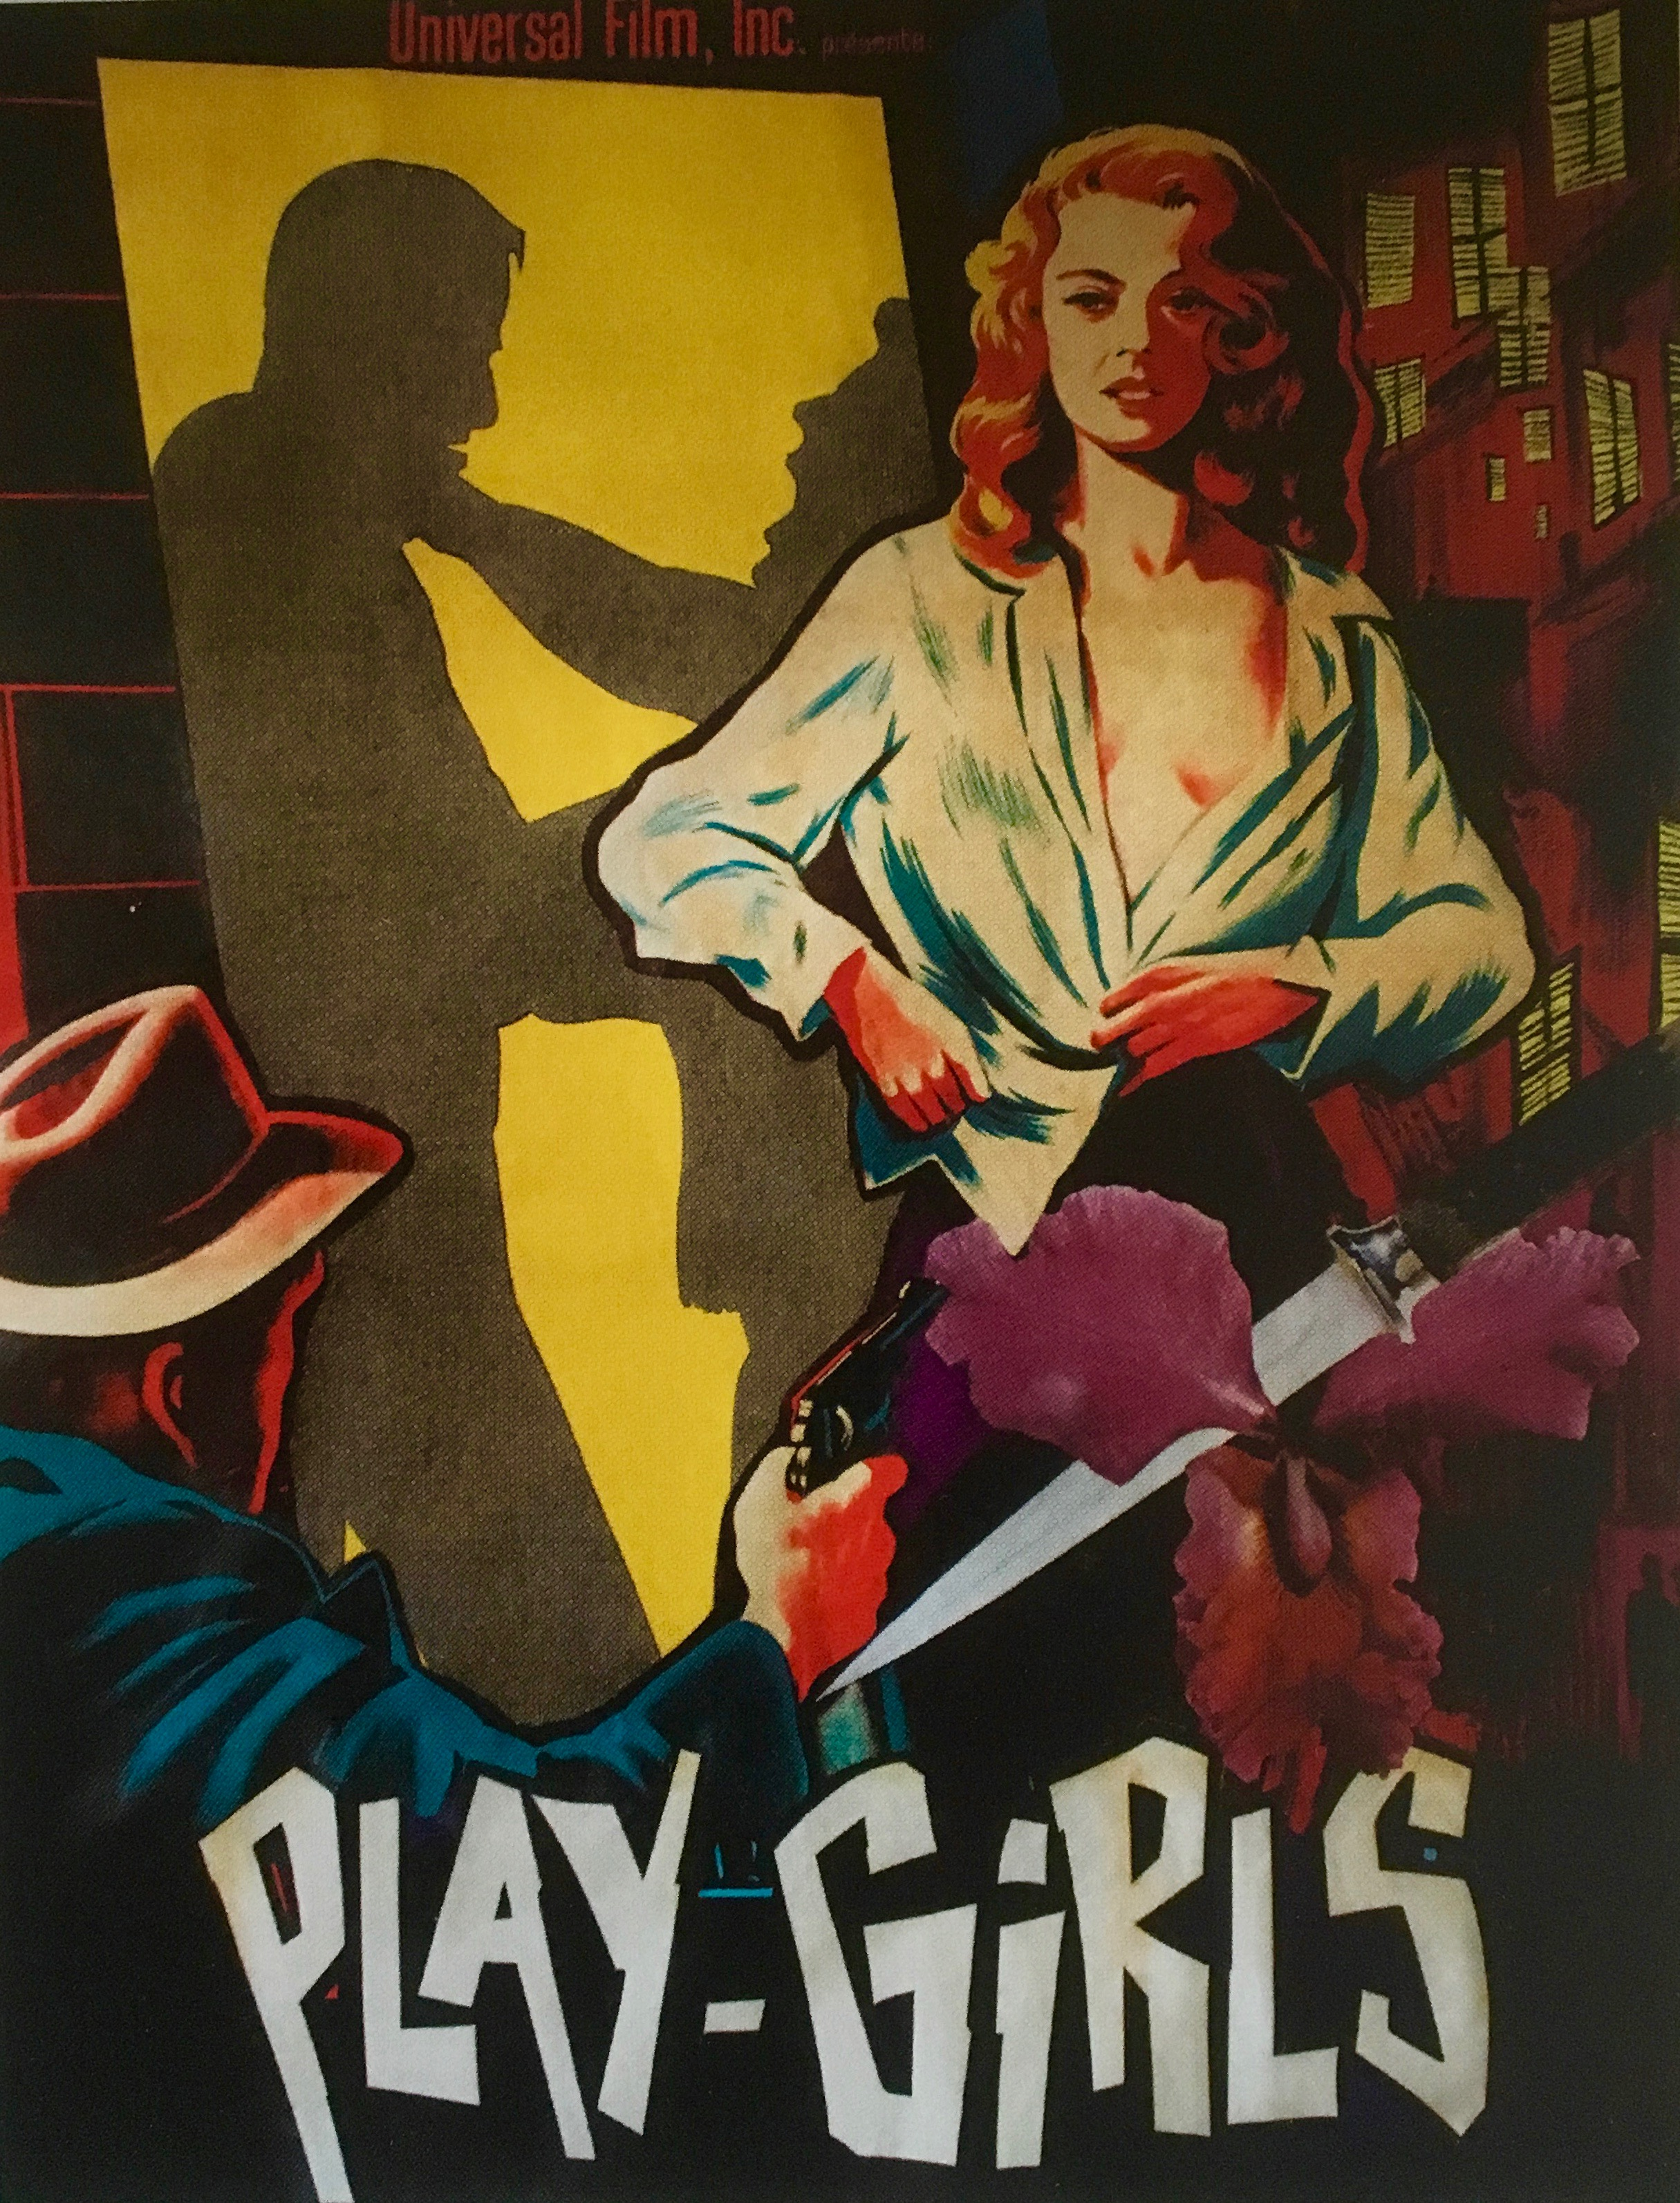 Play-girls